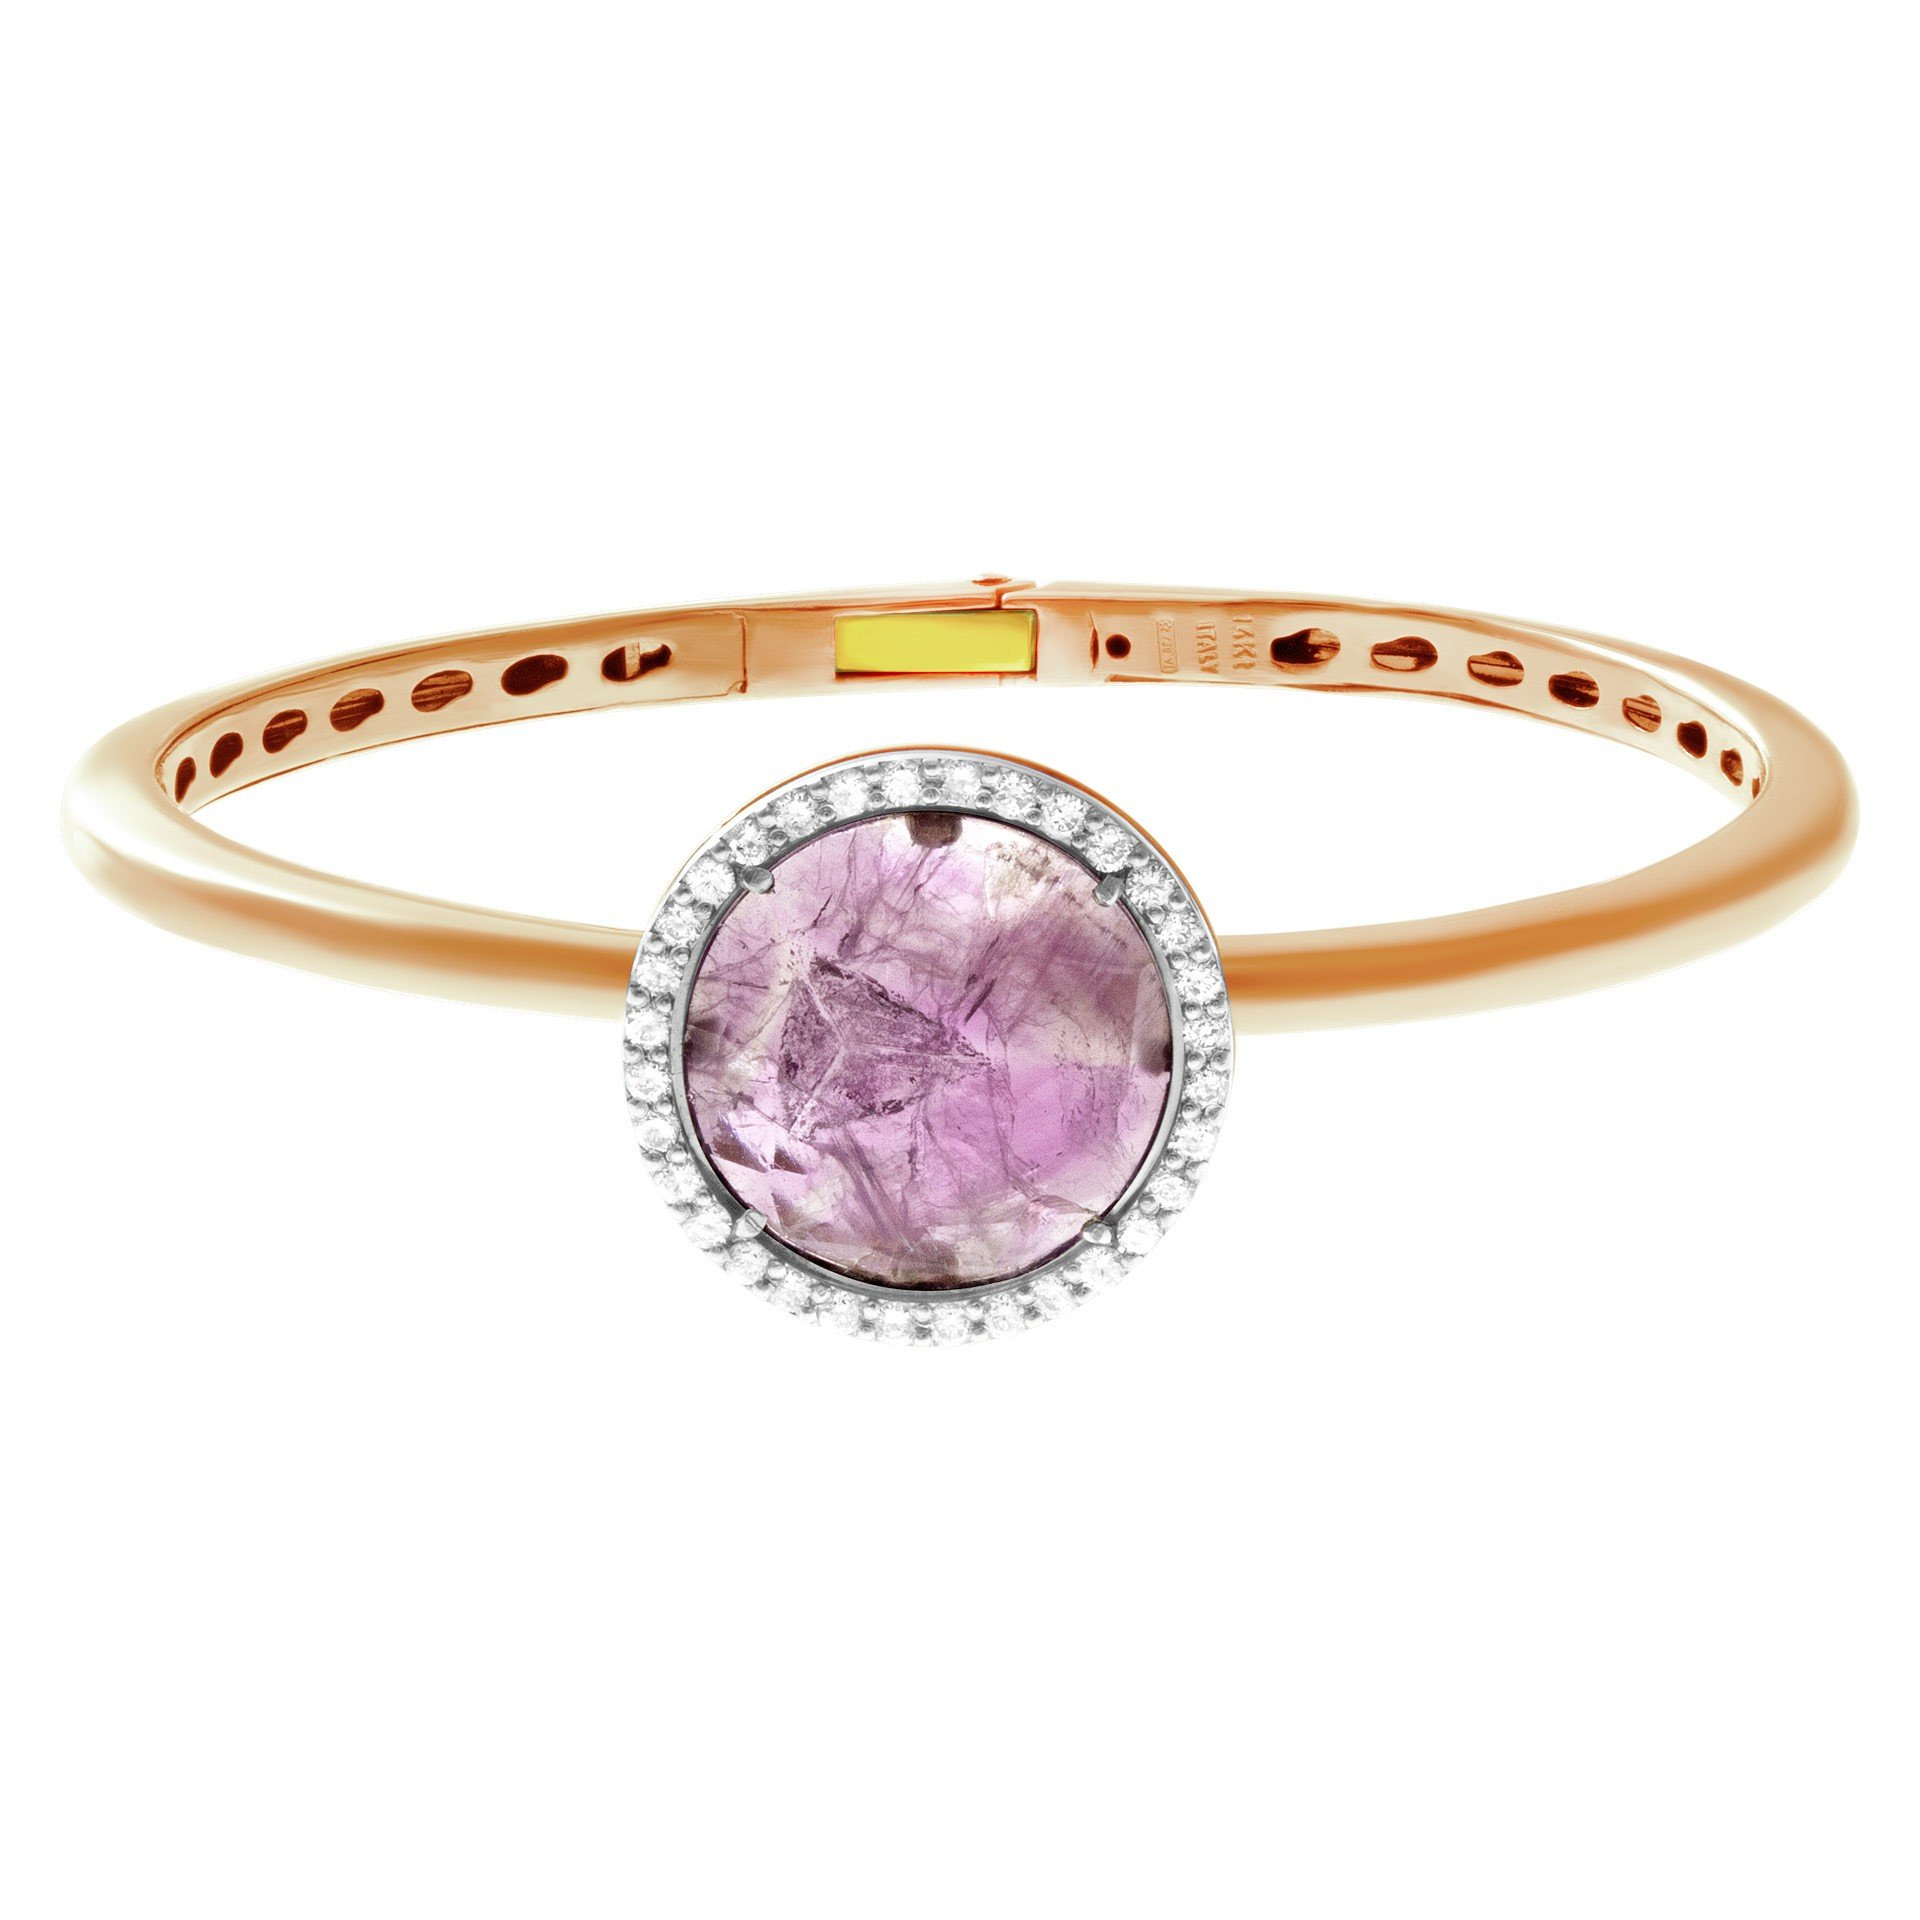 February Birthstone Amethyst Jewelry: Amethyst and Diamond 14k Rose Gold Bangle